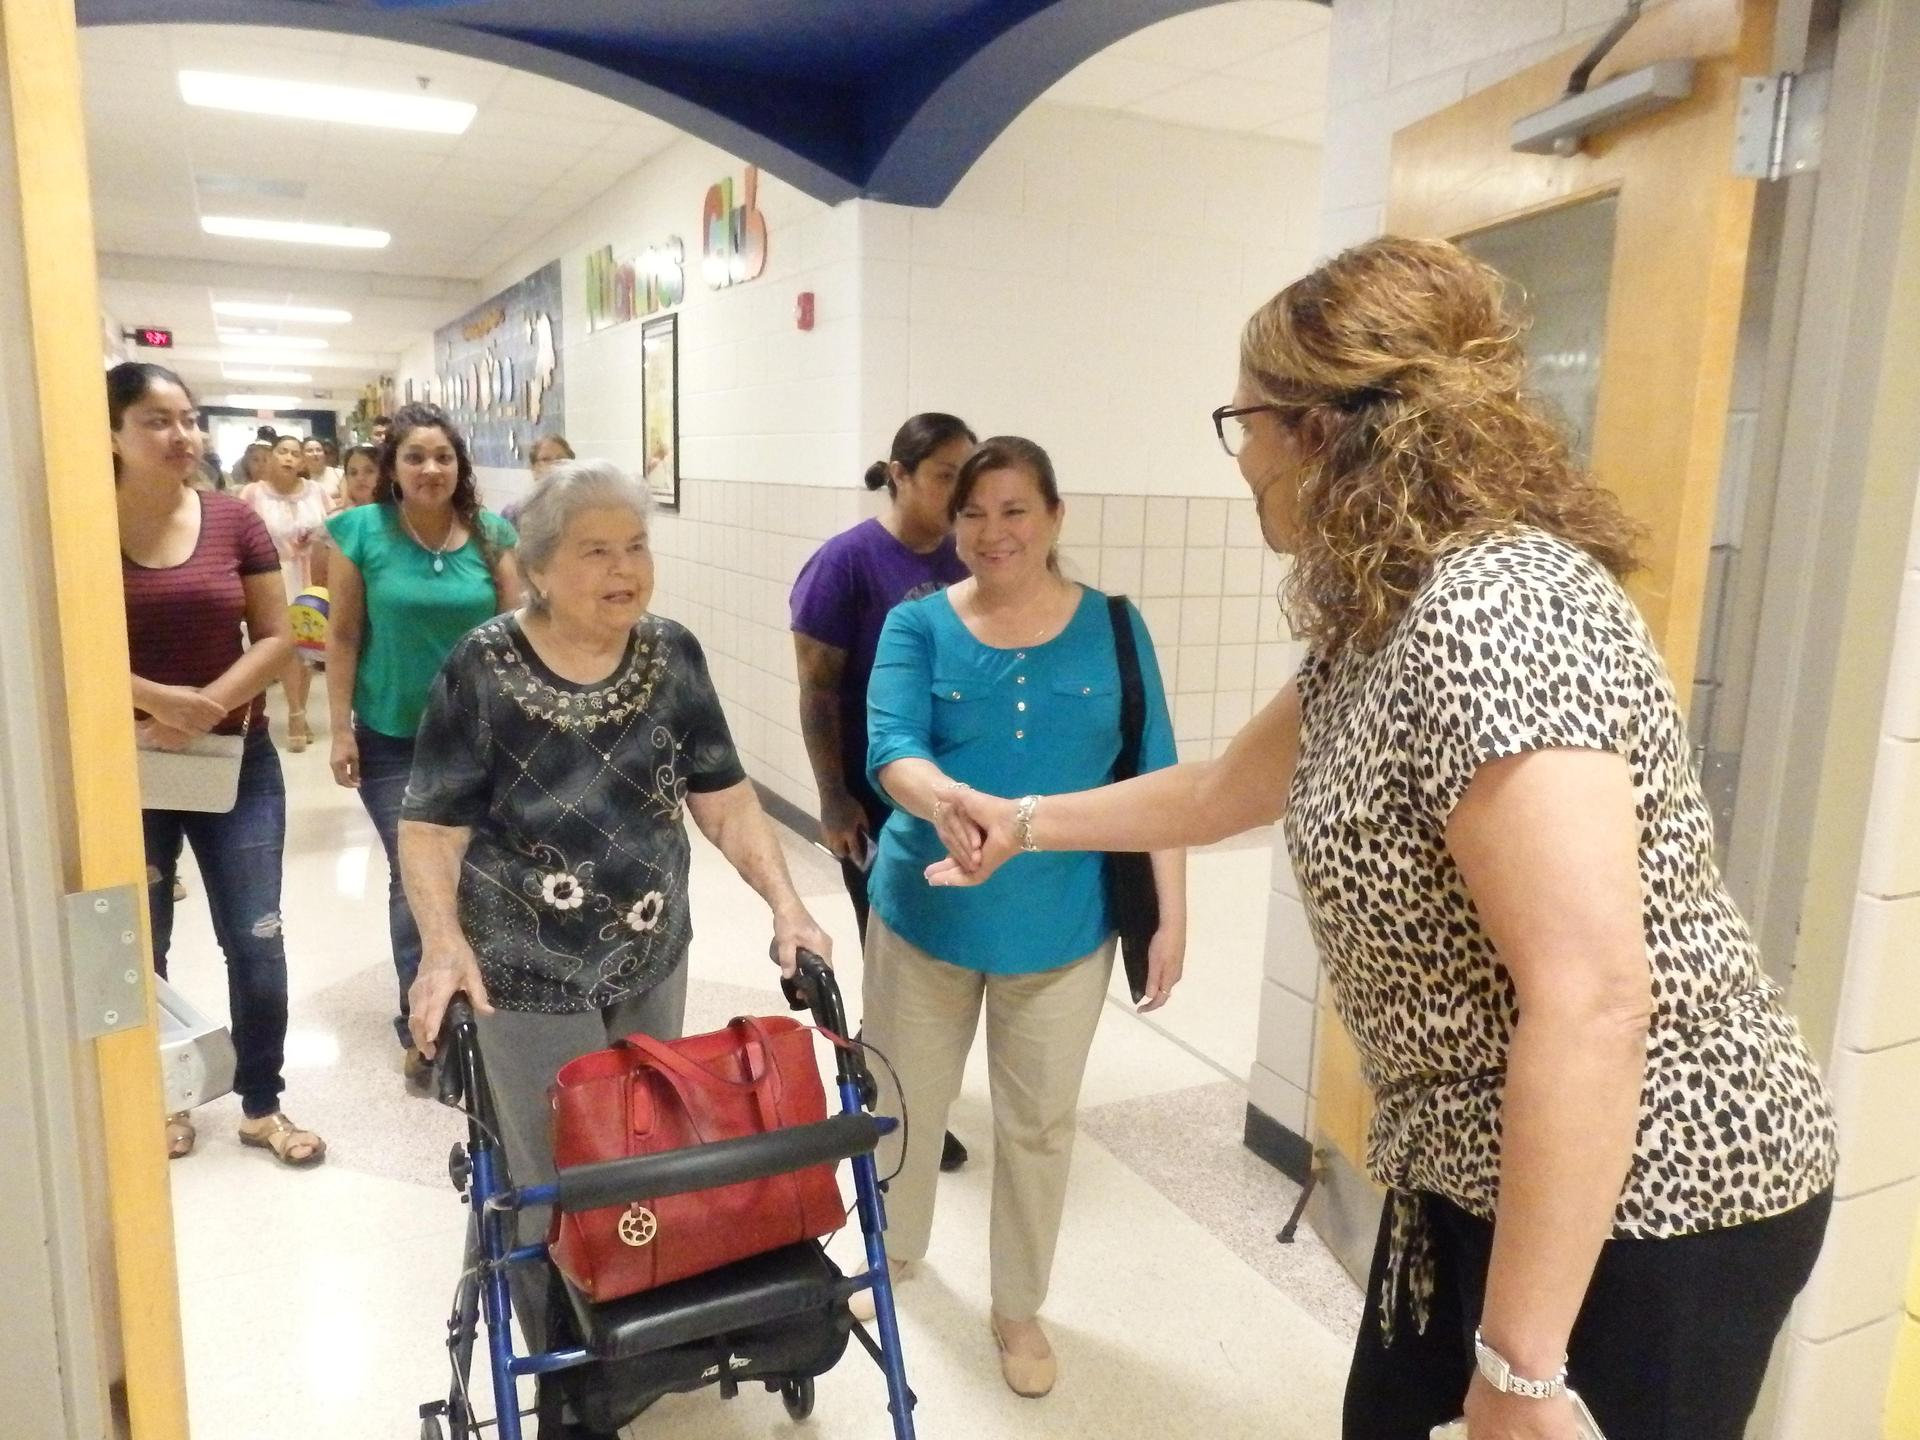 Principal greets and welcomes parents to Kinder program